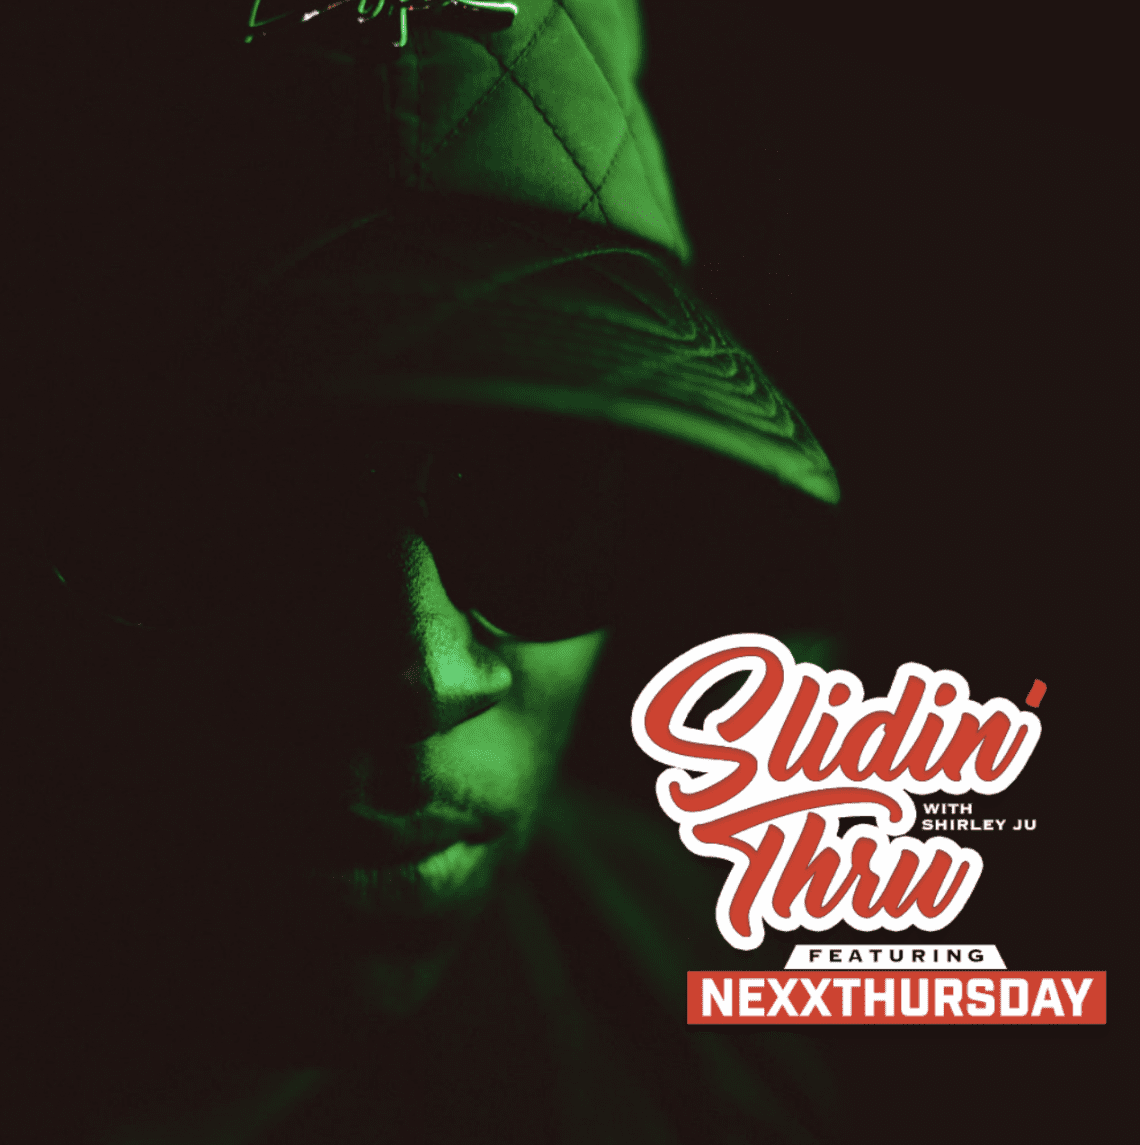 Slidin' Thru: NexXthursday